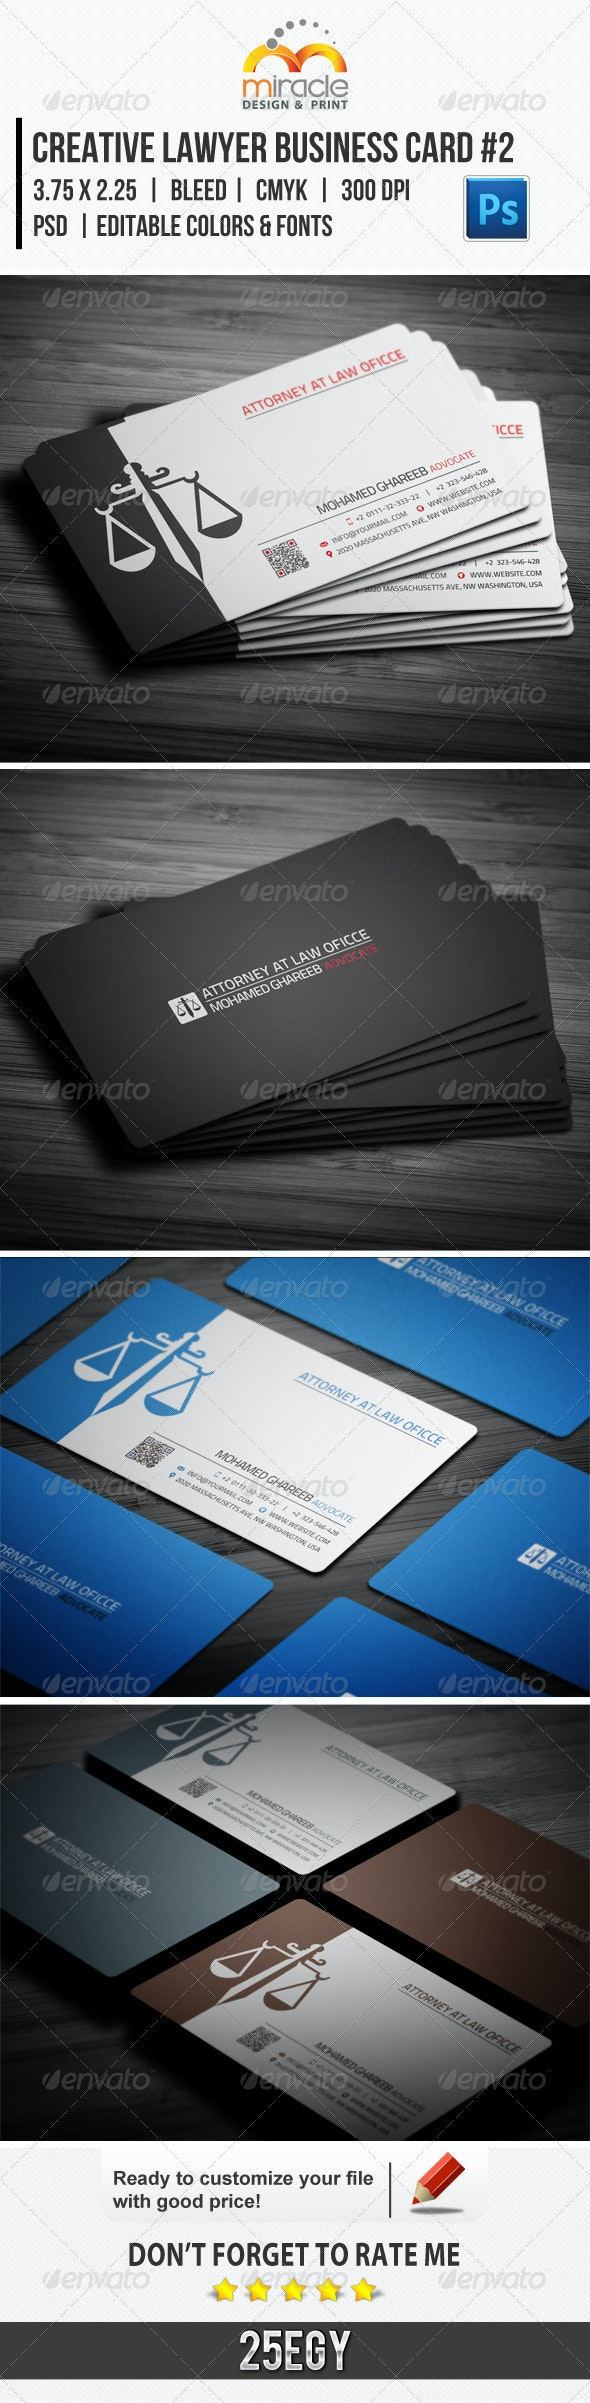 Creative Lawyer Business Card #2 - Business Cards Print Templates